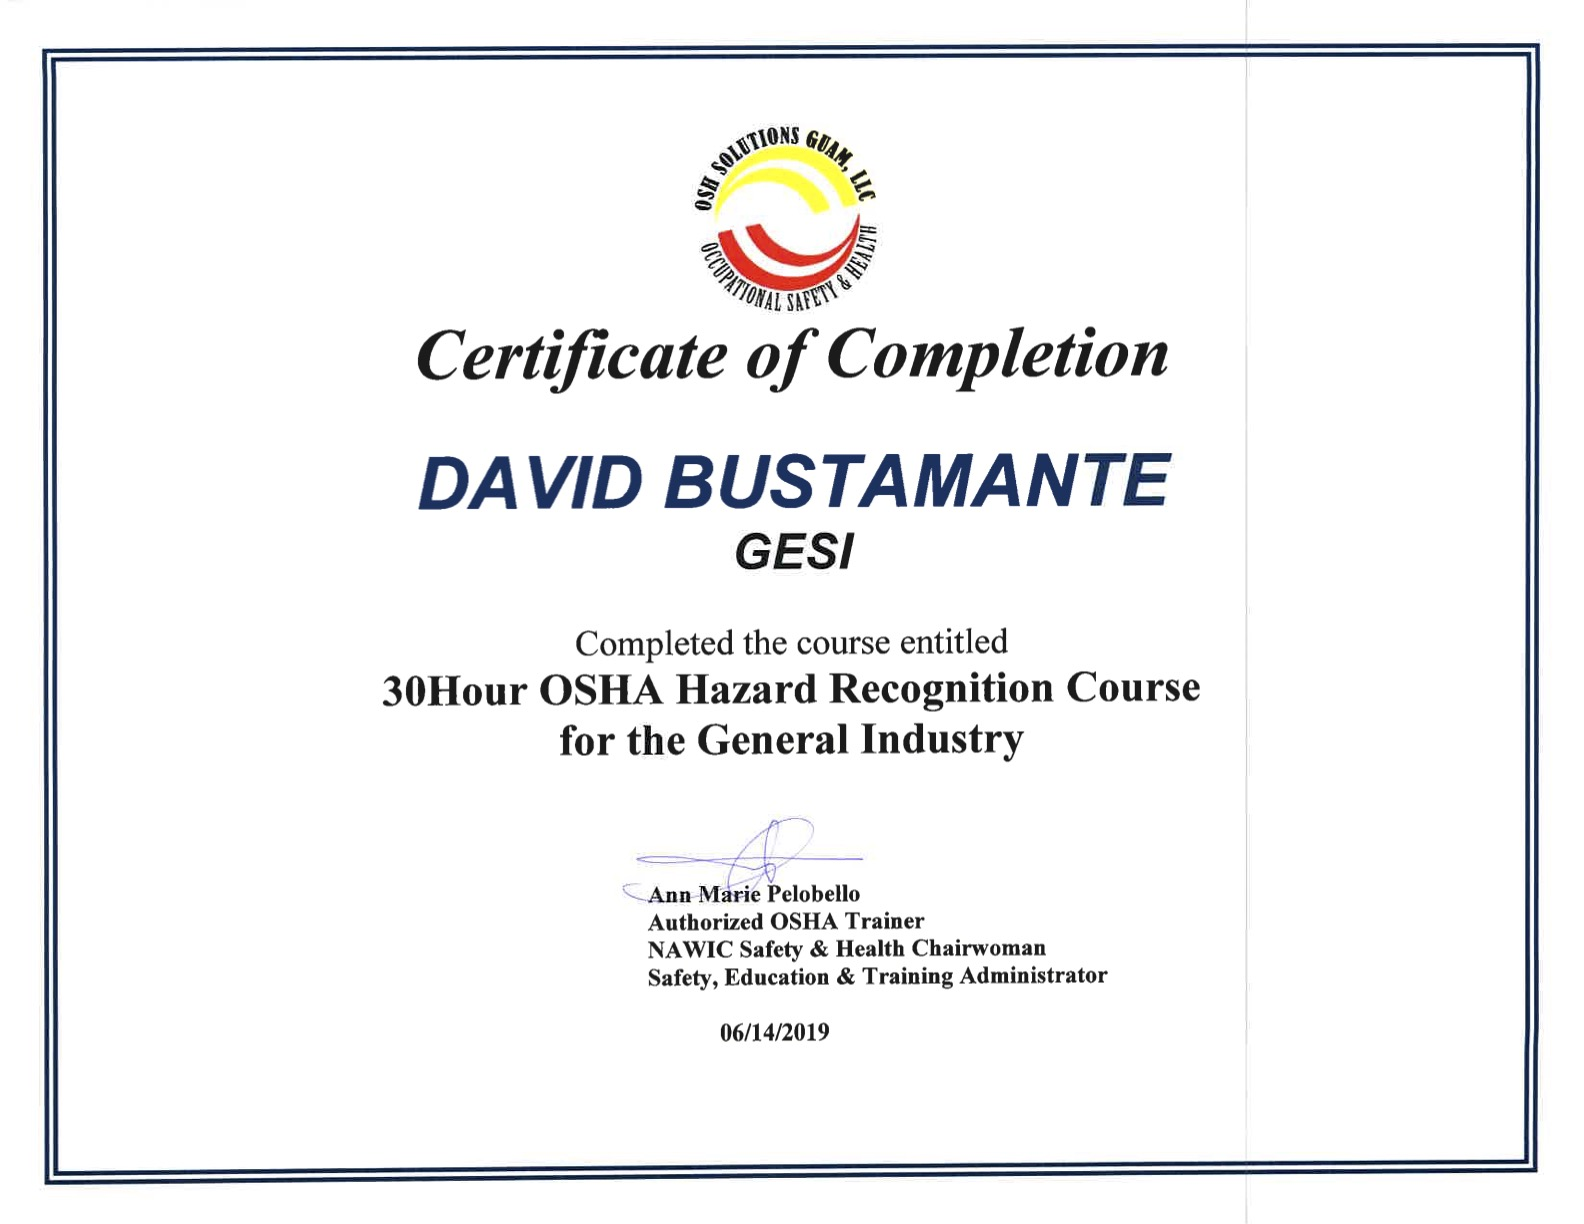 OSHA Certificates-David Bustamante